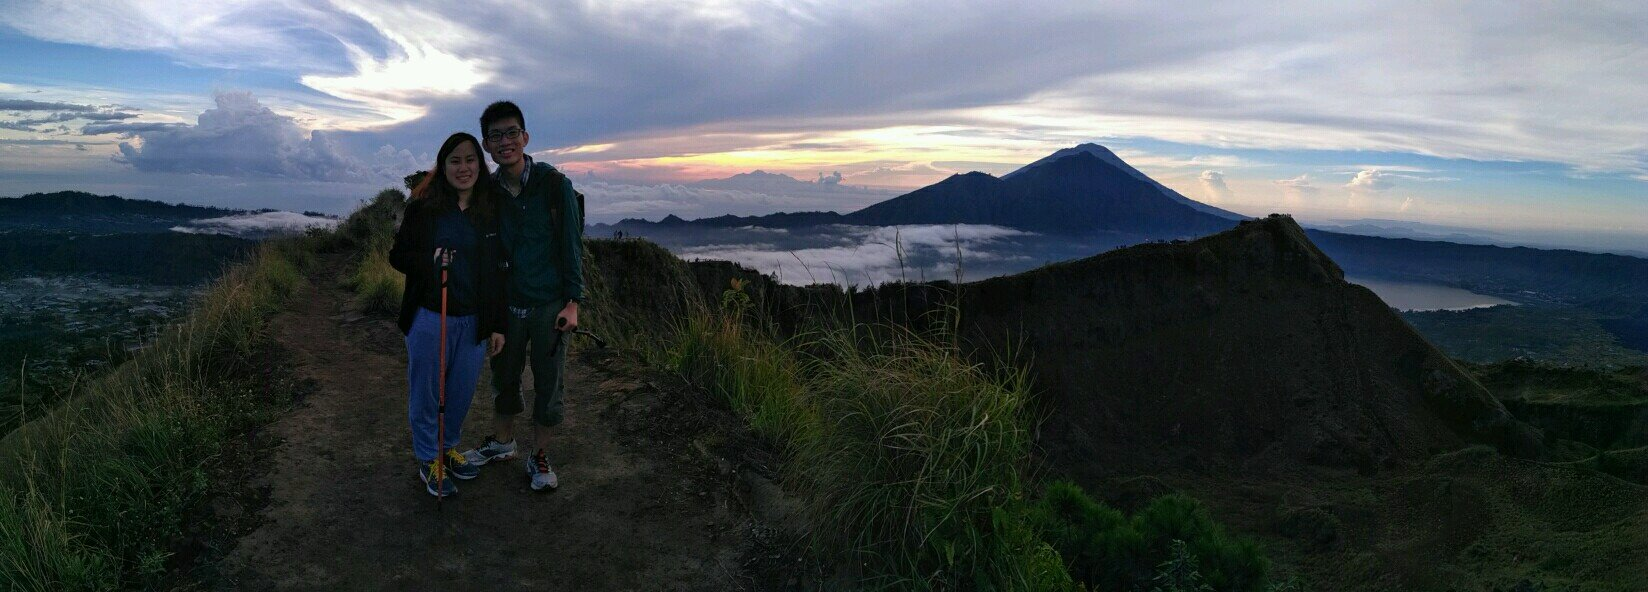 Ubud Sunrise Hiking